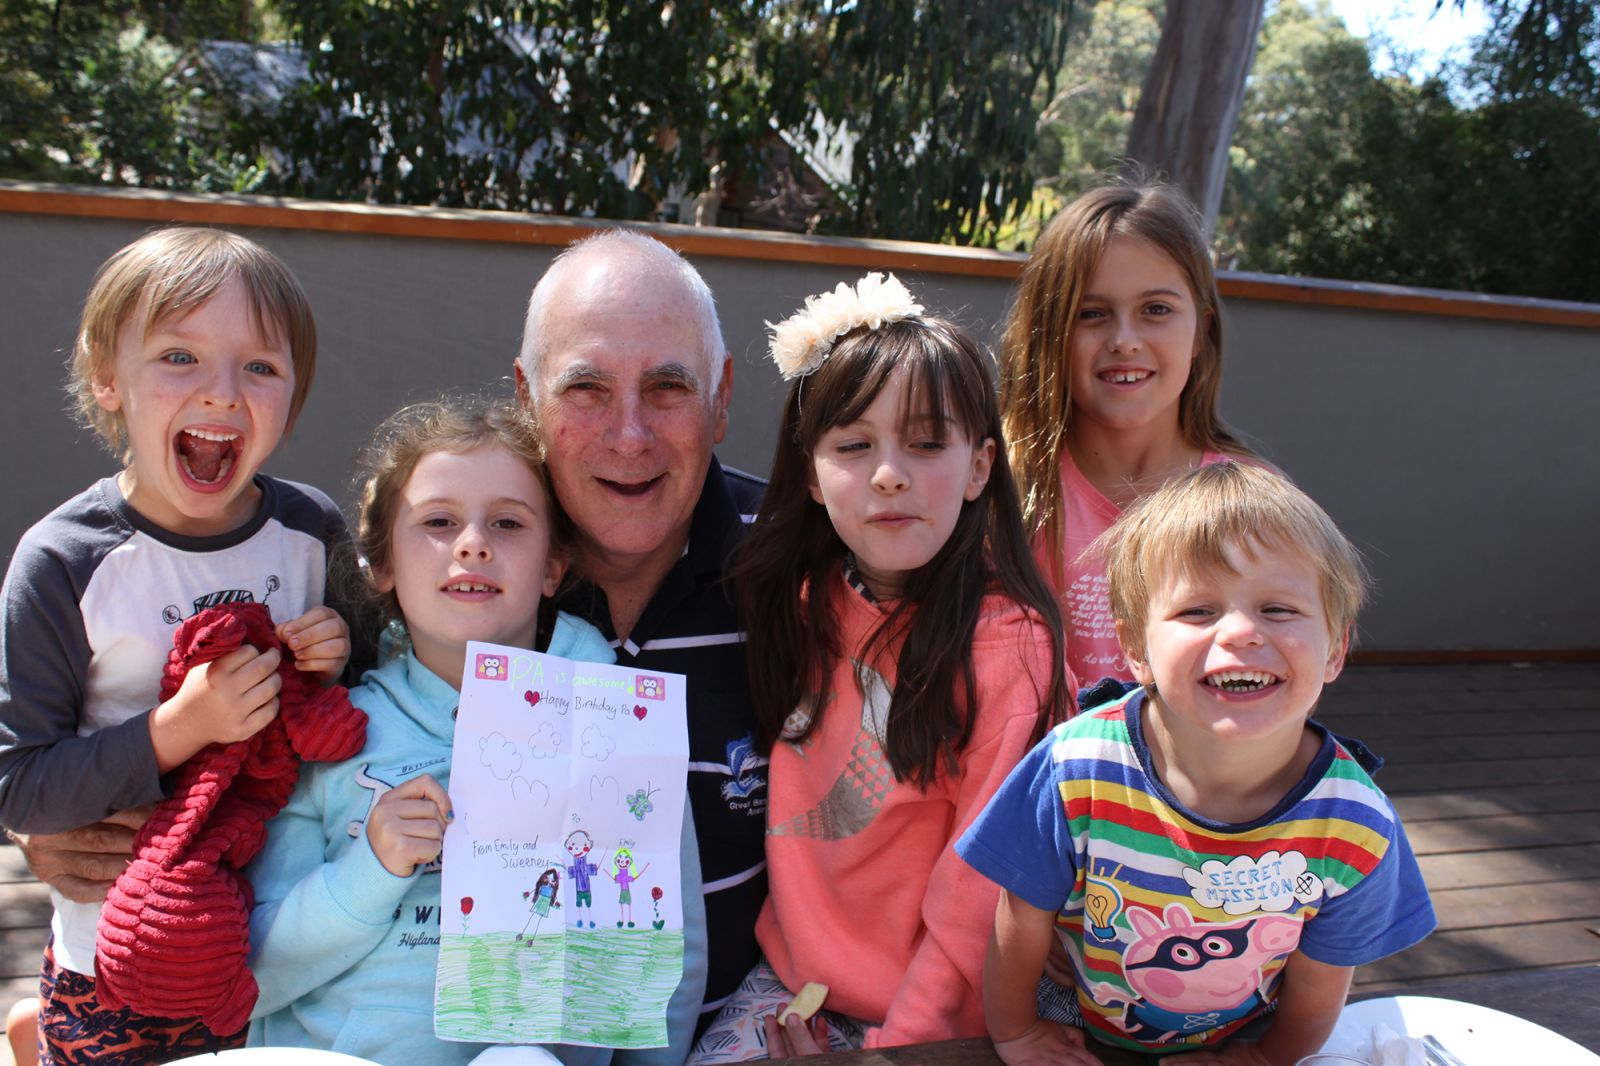 John in Retirement with grandchildren